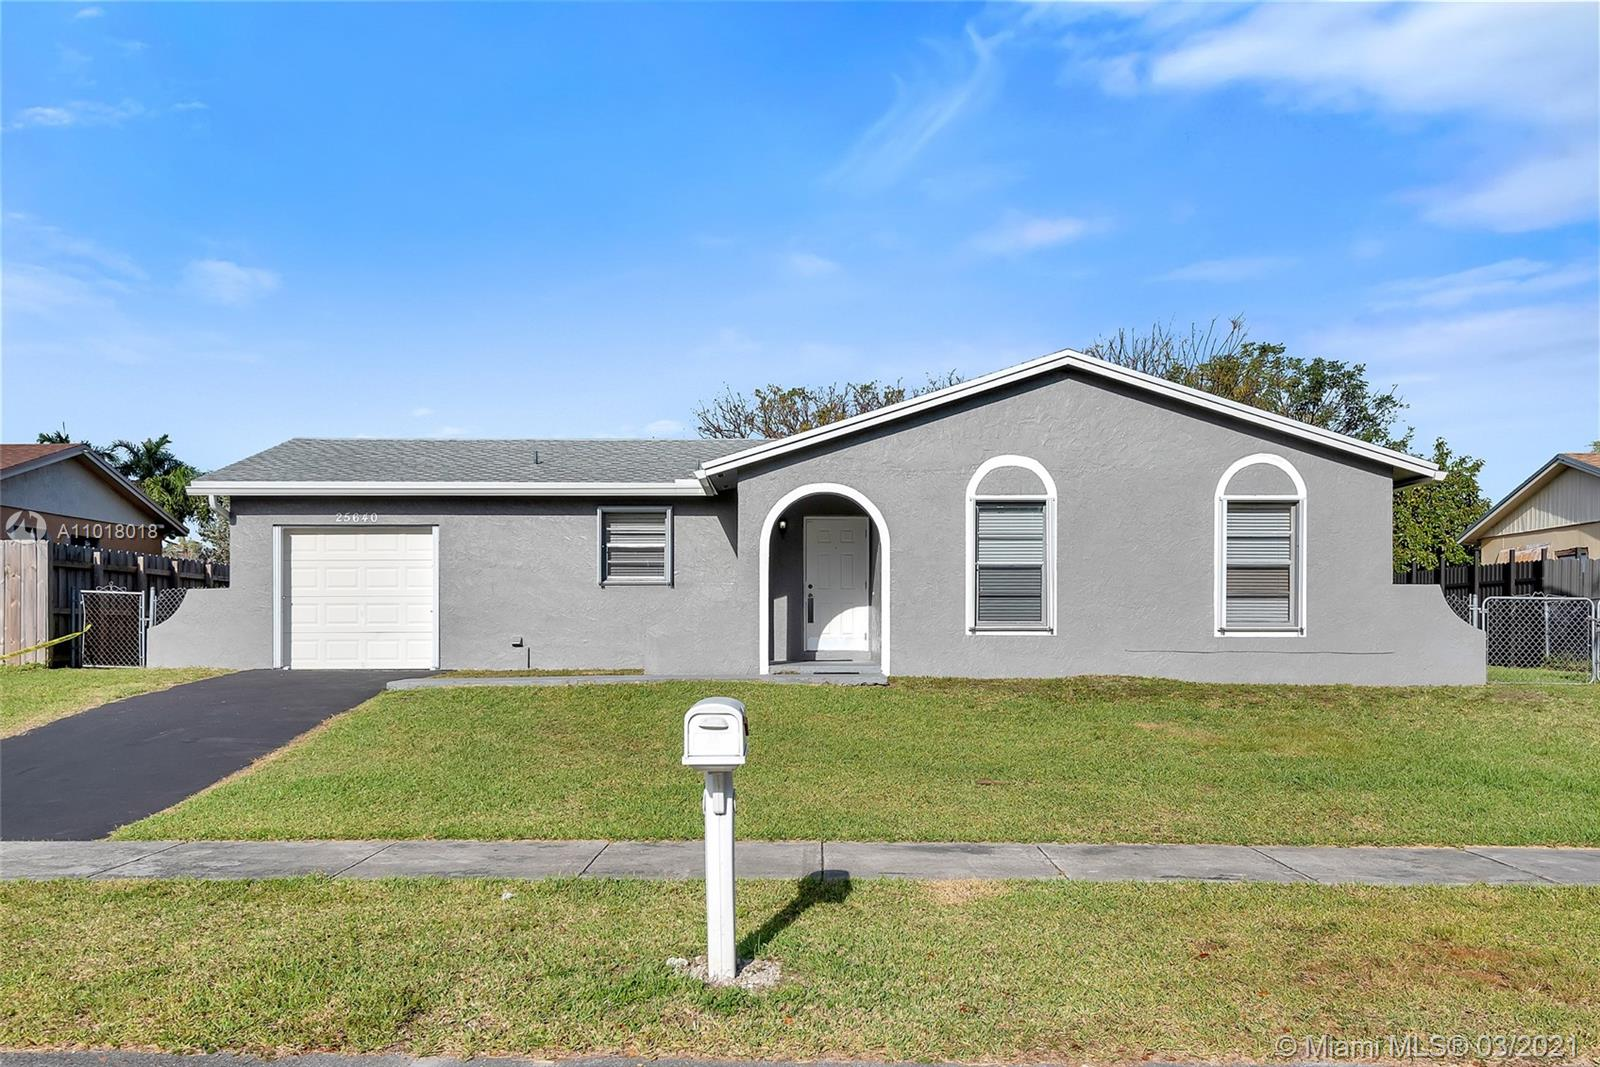 25640 SW 131st Ct Property Photo - Homestead, FL real estate listing